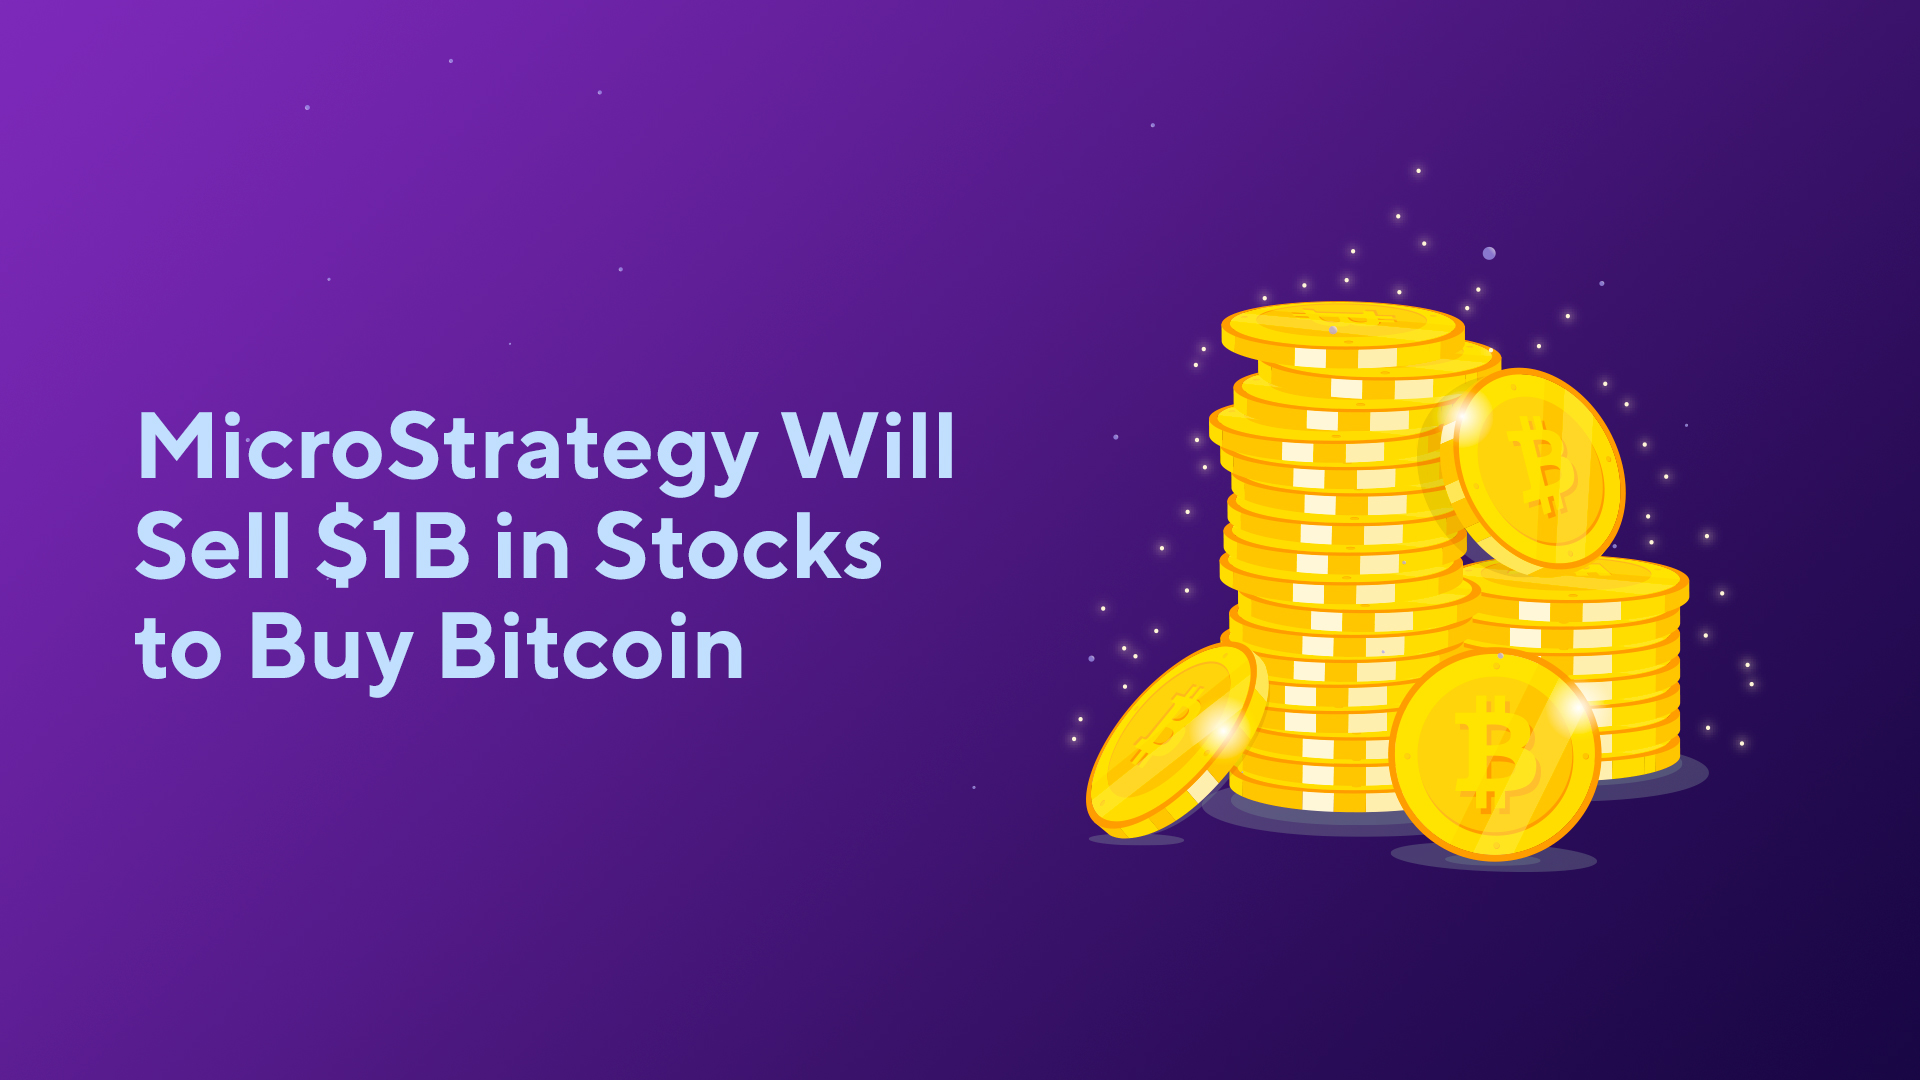 MicroStrategy Will Sell $1B in Stocks to Buy Bitcoin